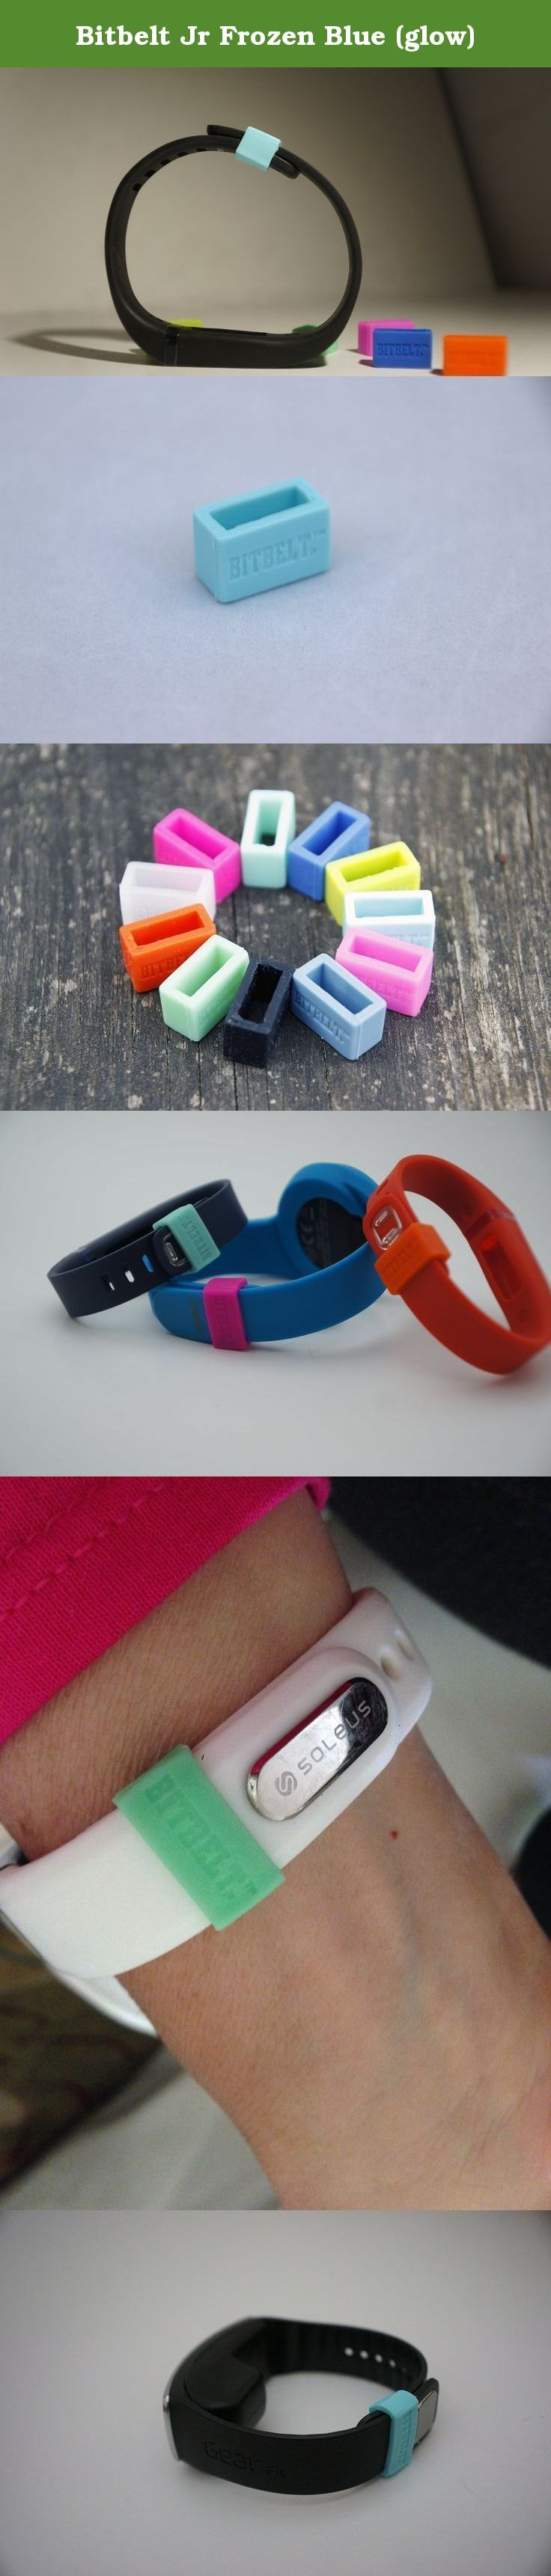 Bitbelt Jr Frozen Blue (glow). BITBELT JR CREATED TO PROTECT YOUR THINNER WIDTH WRIST WORN FITNESS TRACKER AND CHILD SIZE MAGIC BAND. DONT RELY ON A SMALL PLASTIC CLIP TO SECURE YOUR INVESTMENT TO HEALTH OR YOUR VACATION.WE ARE THE CHEAPEST INSURANCE AVAILABLE. Your bracelet will come unclasped. We are the cheapest insurance available to keep yours from being lost.